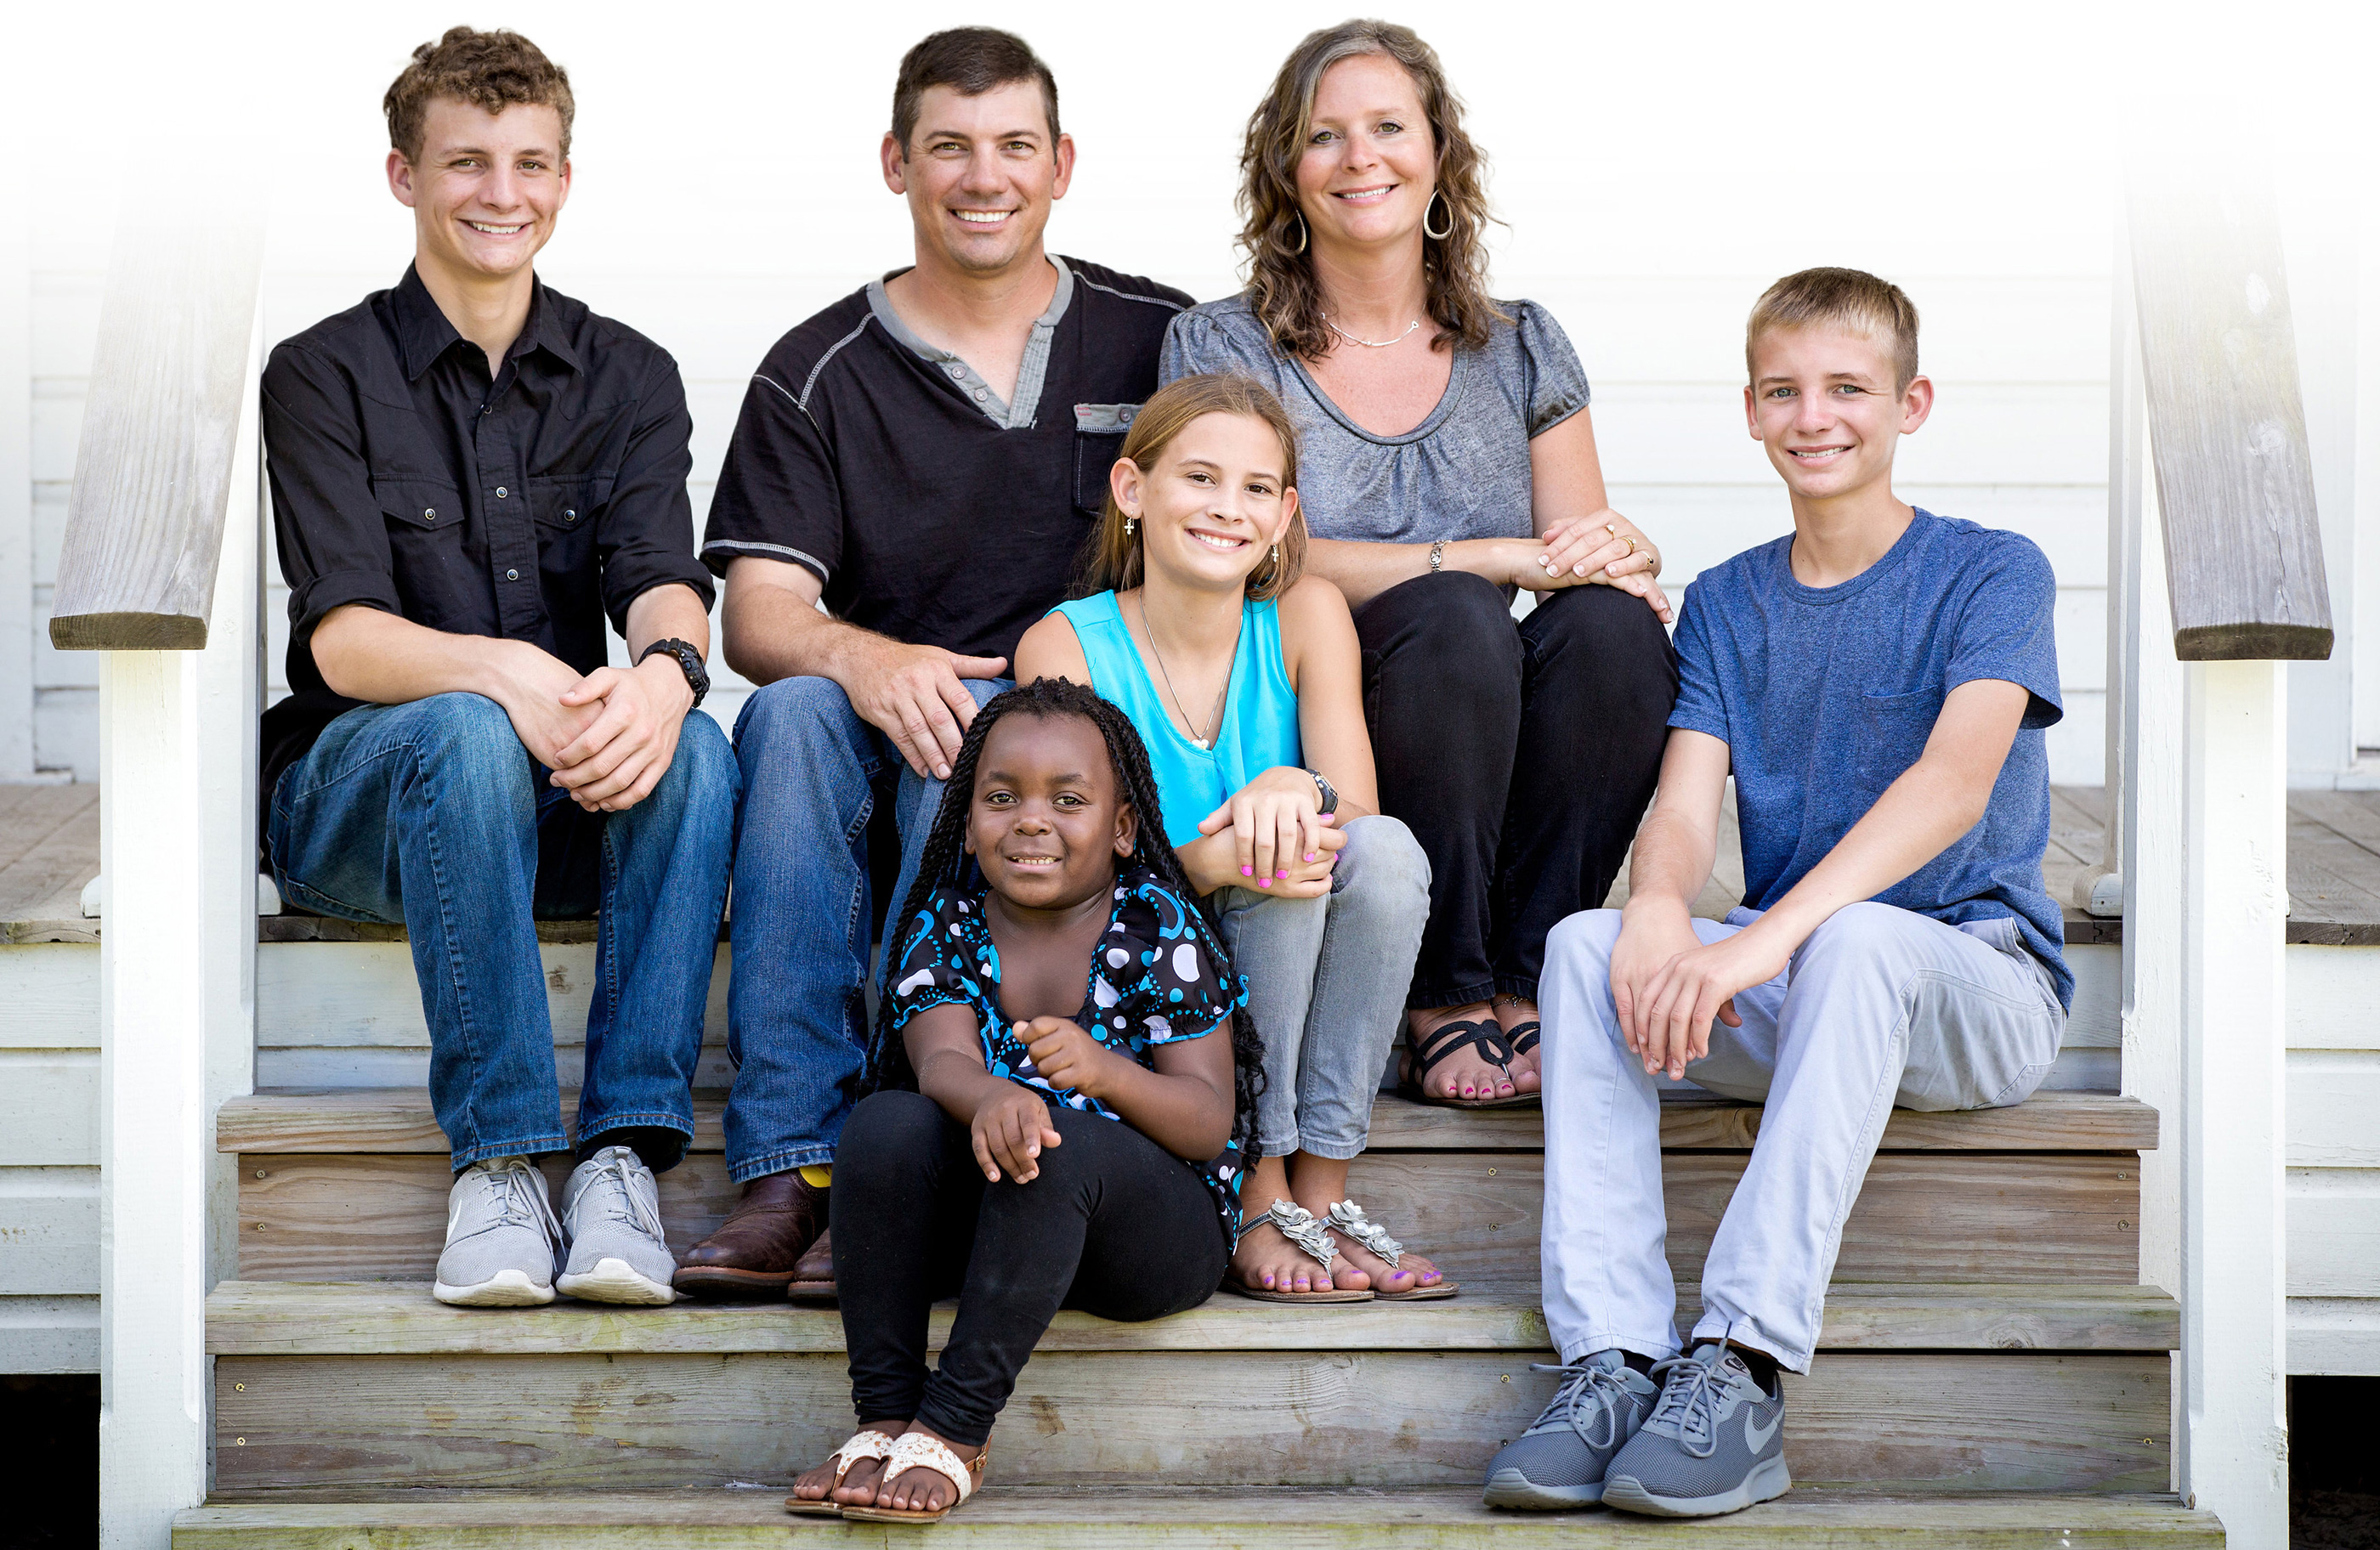 Mullet family - Dustin with wife Tishana and children Grant, Jennica, Tailyn and Brayden from left to right